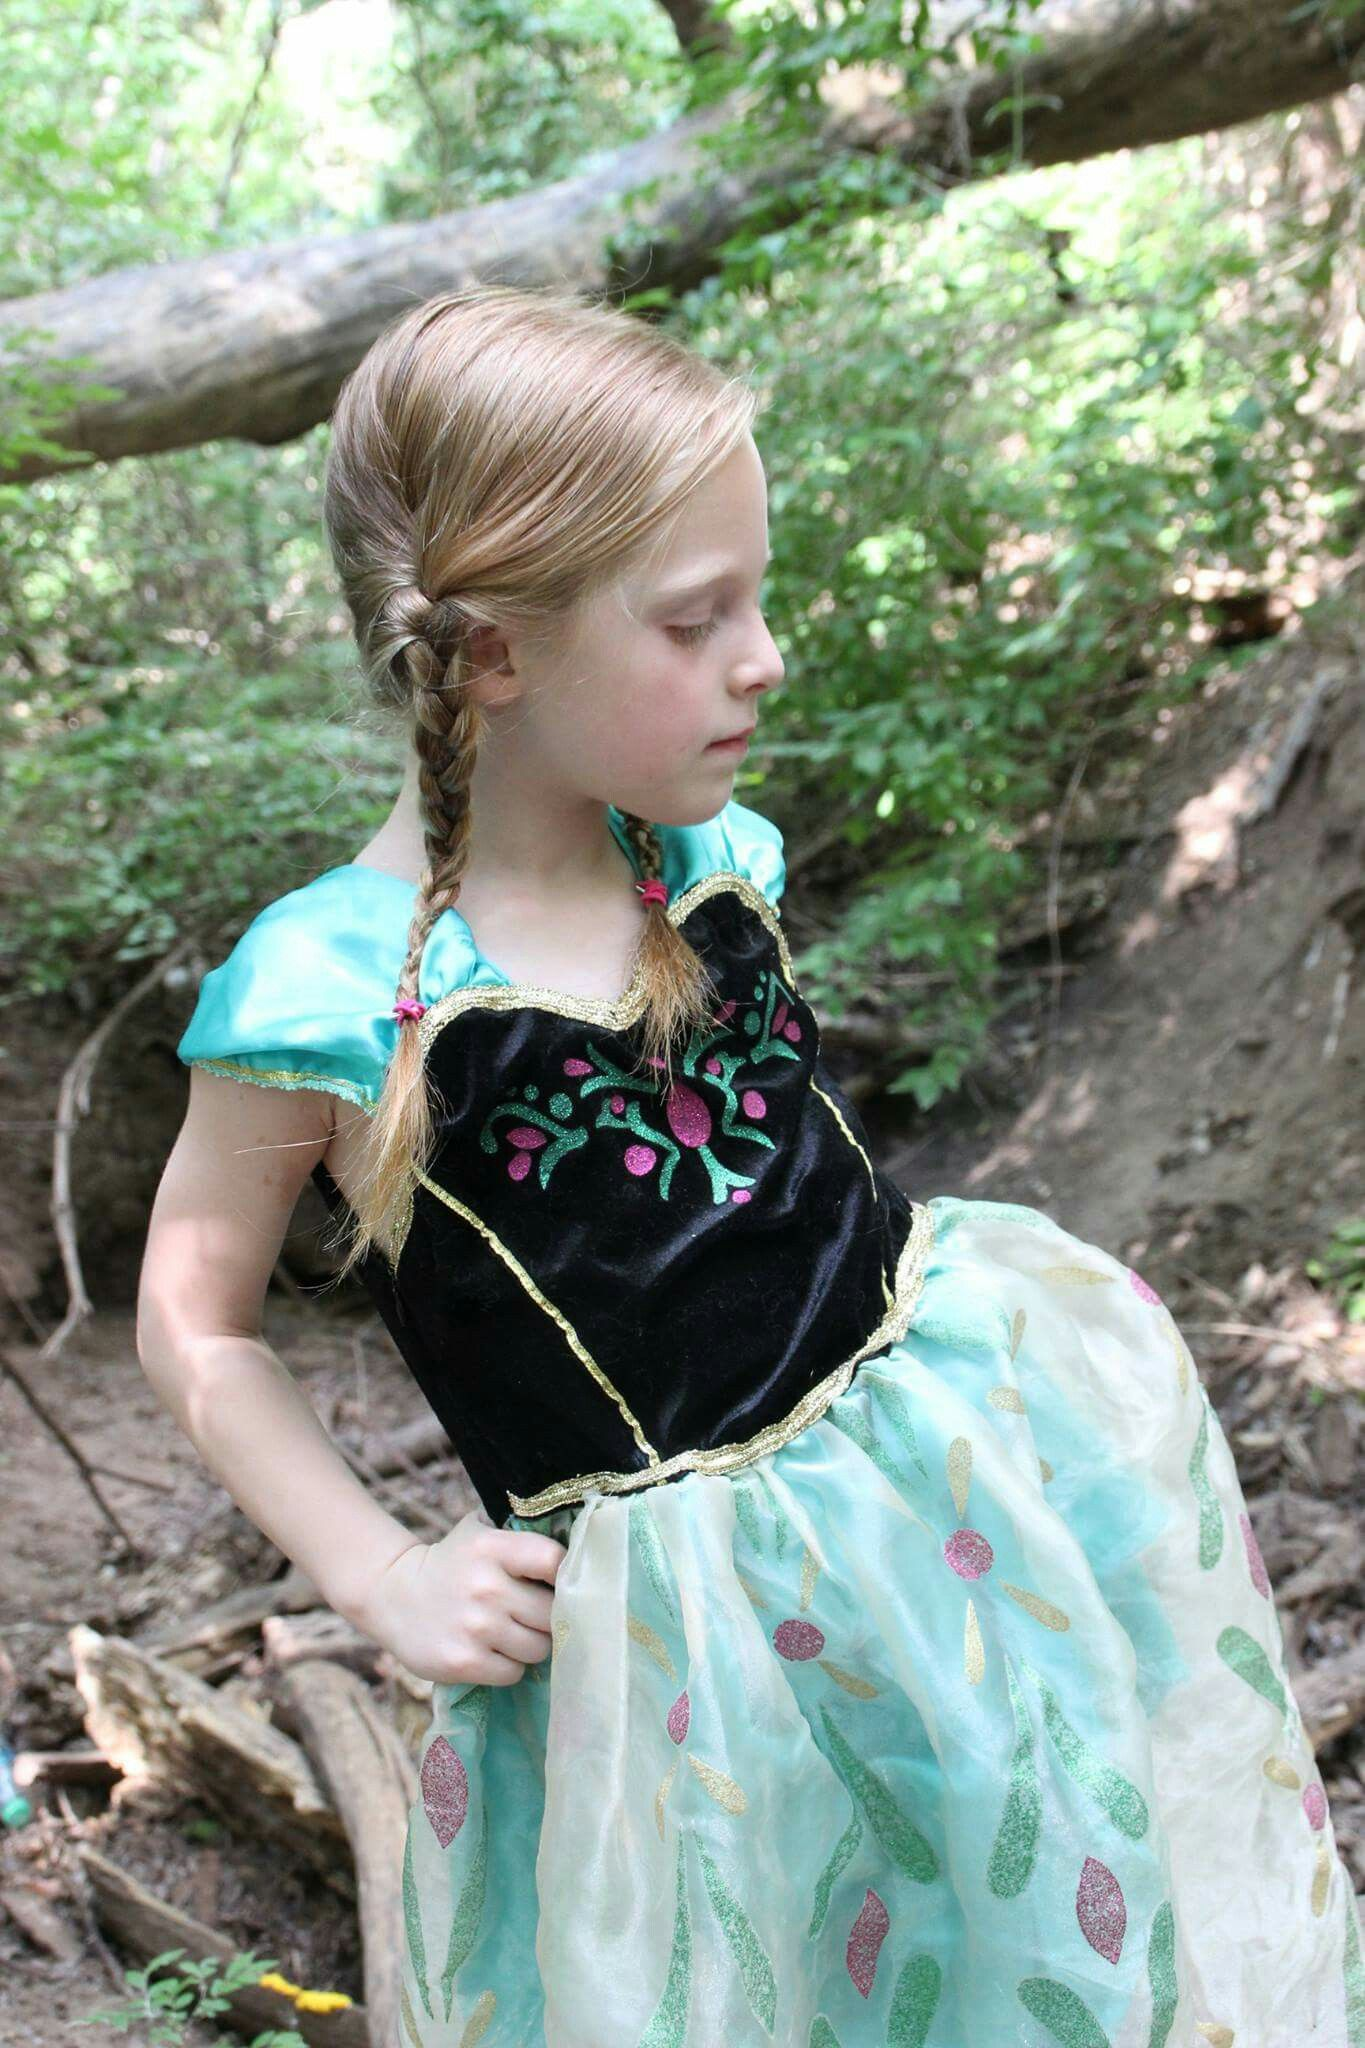 Disney Princess photo shoot, 5 years old. Anna from Frozen